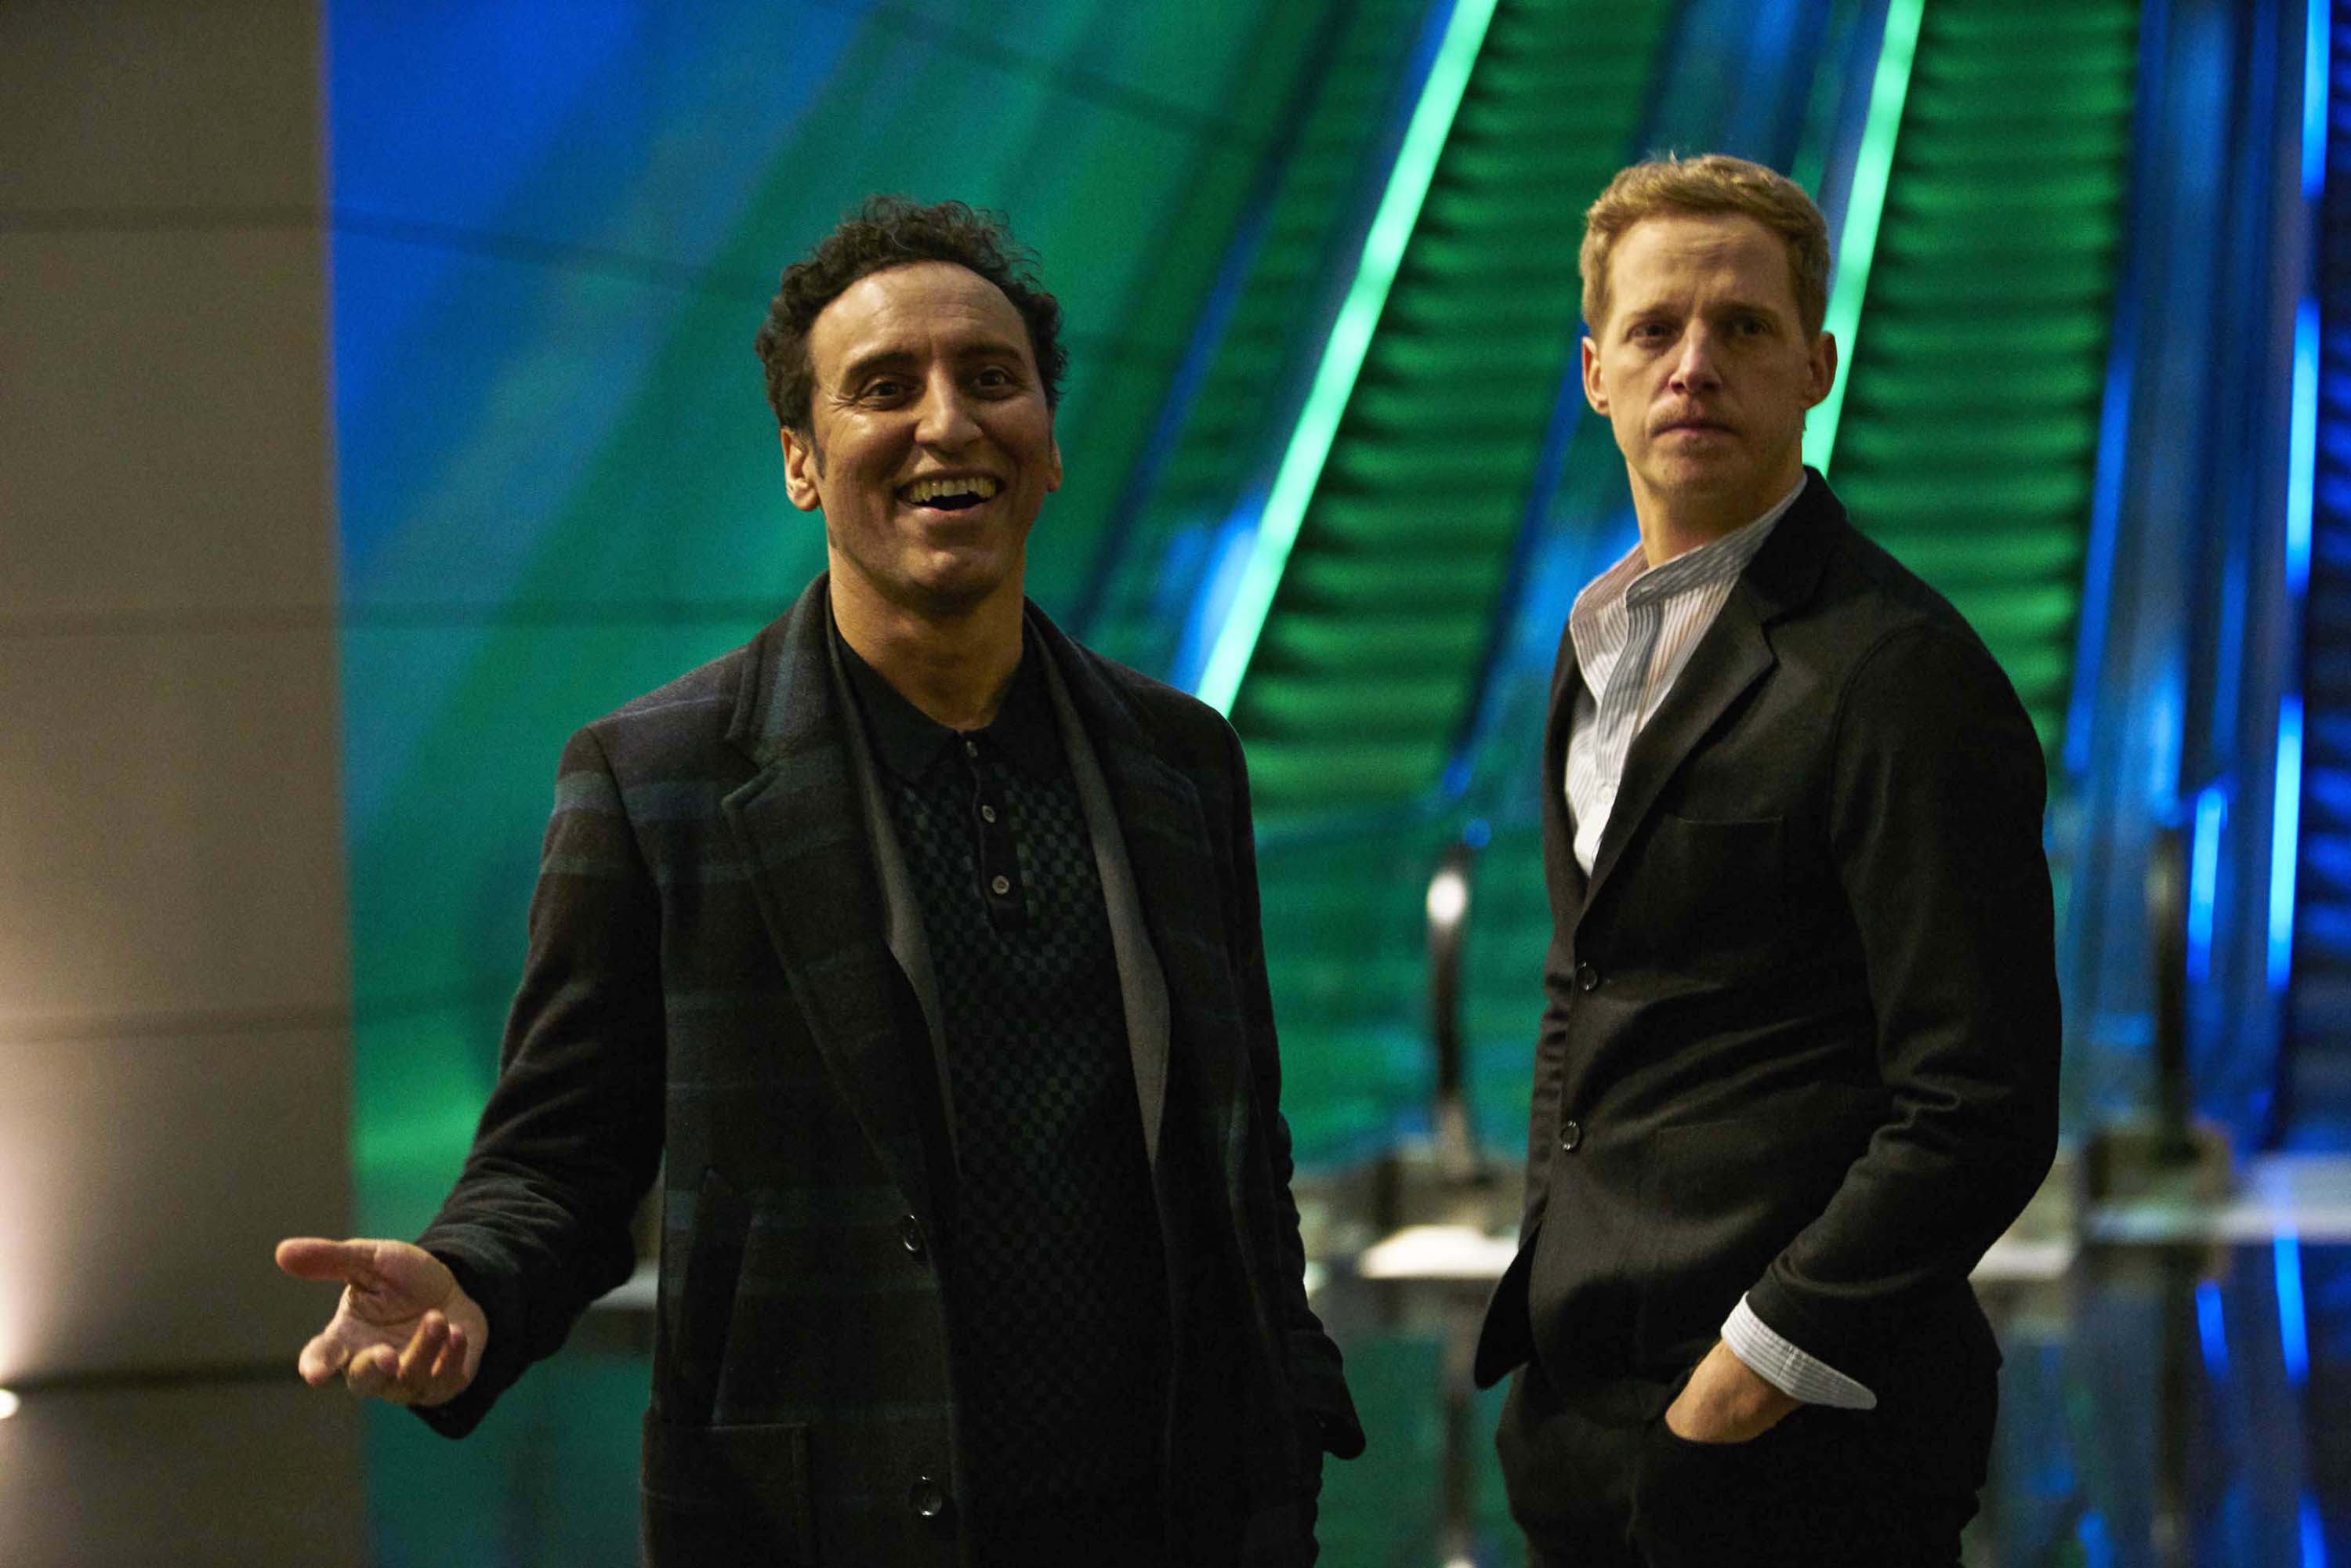 COMIC RELIEF: Aasif Mandvi (left) with co-star Chris Geere in a scene from This Way Up